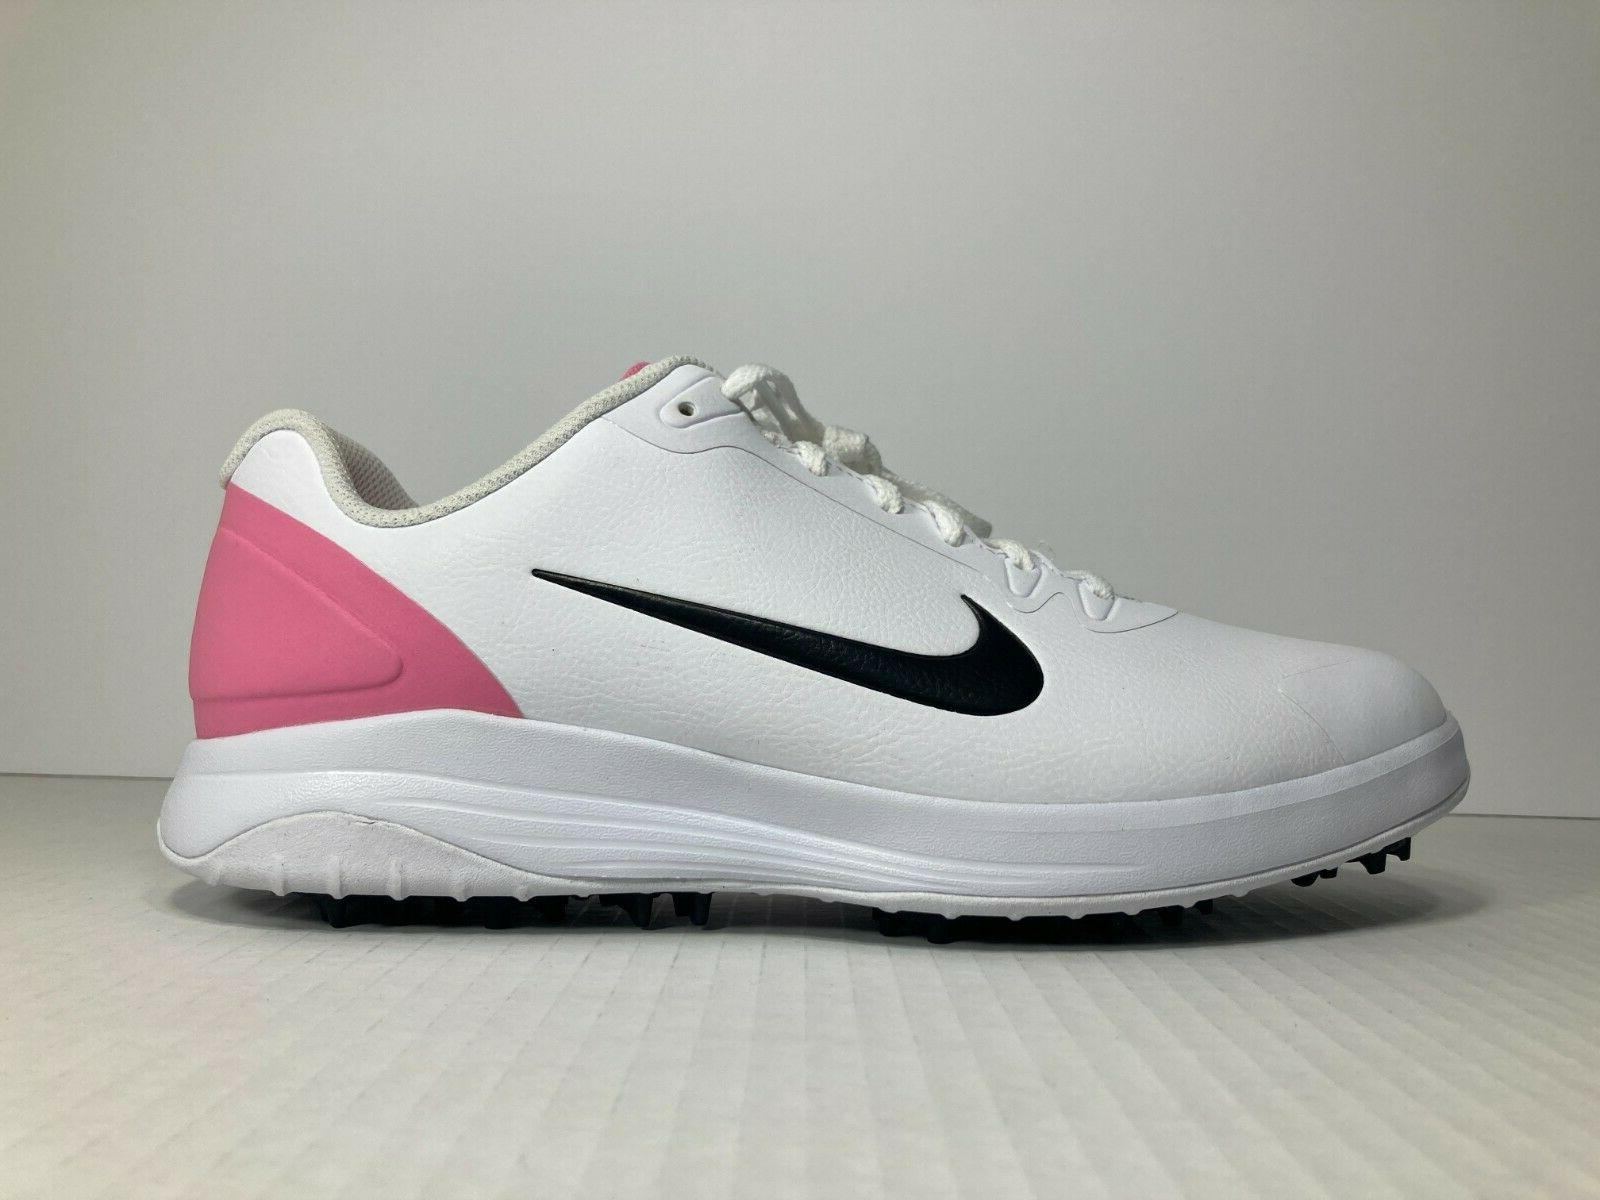 NIKE GOLF Mens Golfing Shoes Spikes - - Size